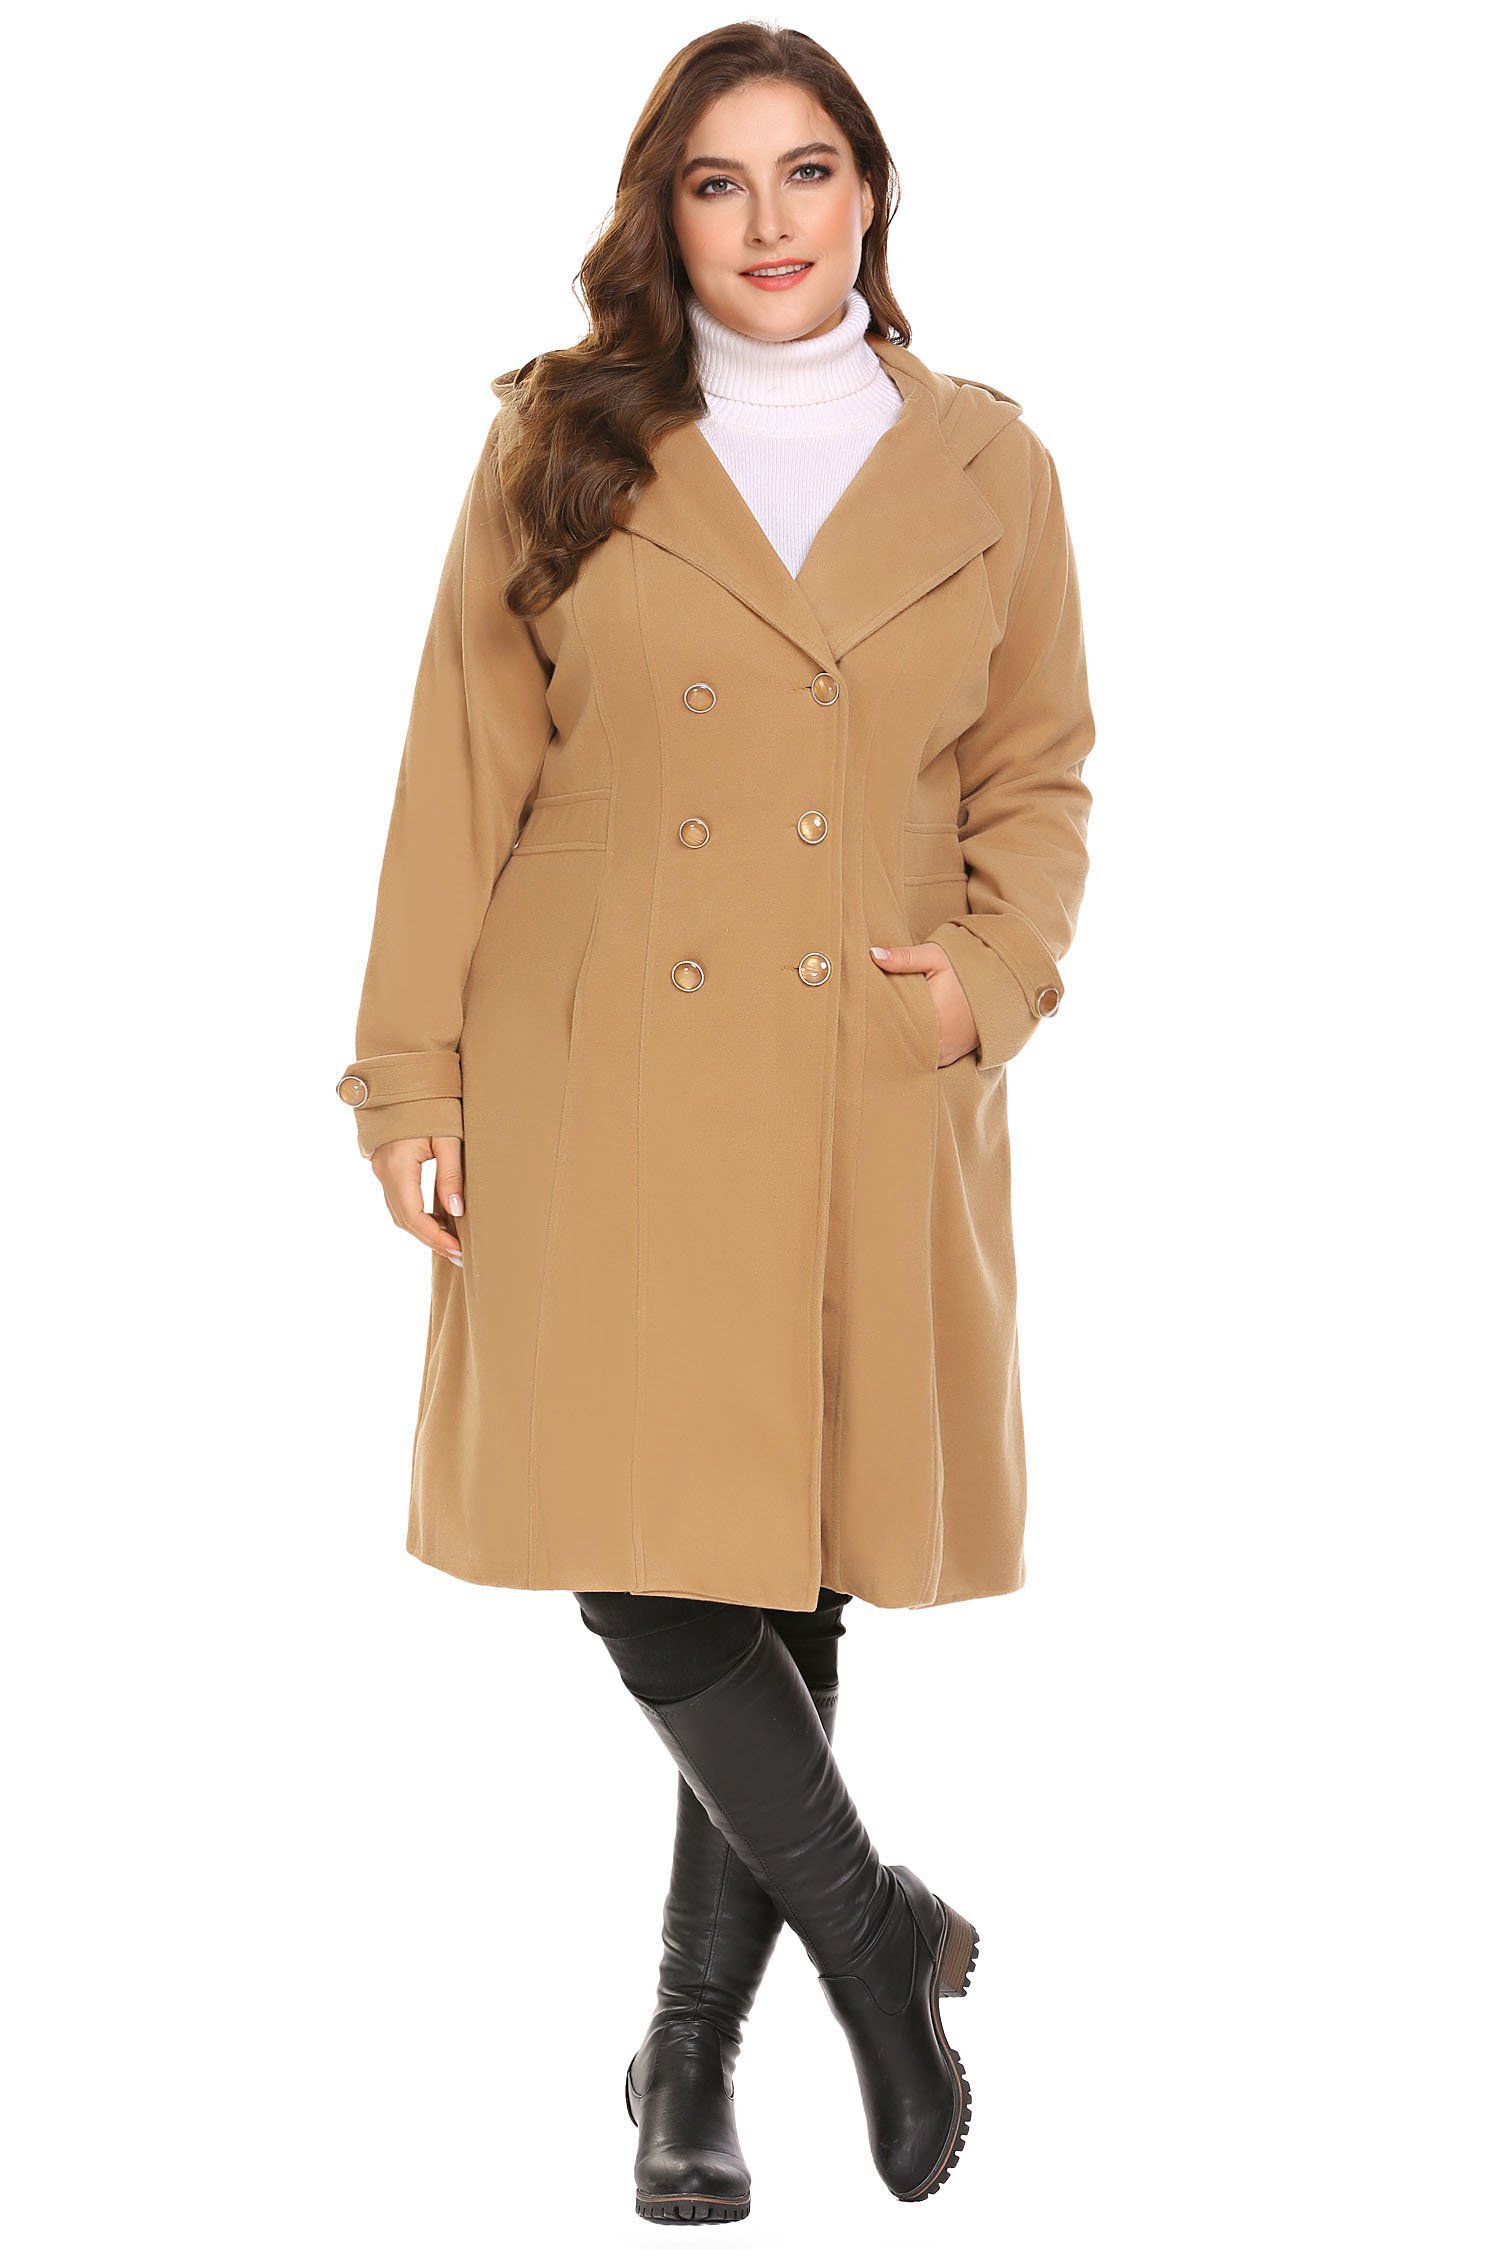 Zeagoo Women Plus Size Double Breasted Wool Elegant Long Lined Lightweight Trench Coat (16W-24W) by Zeagoo (Image #4)